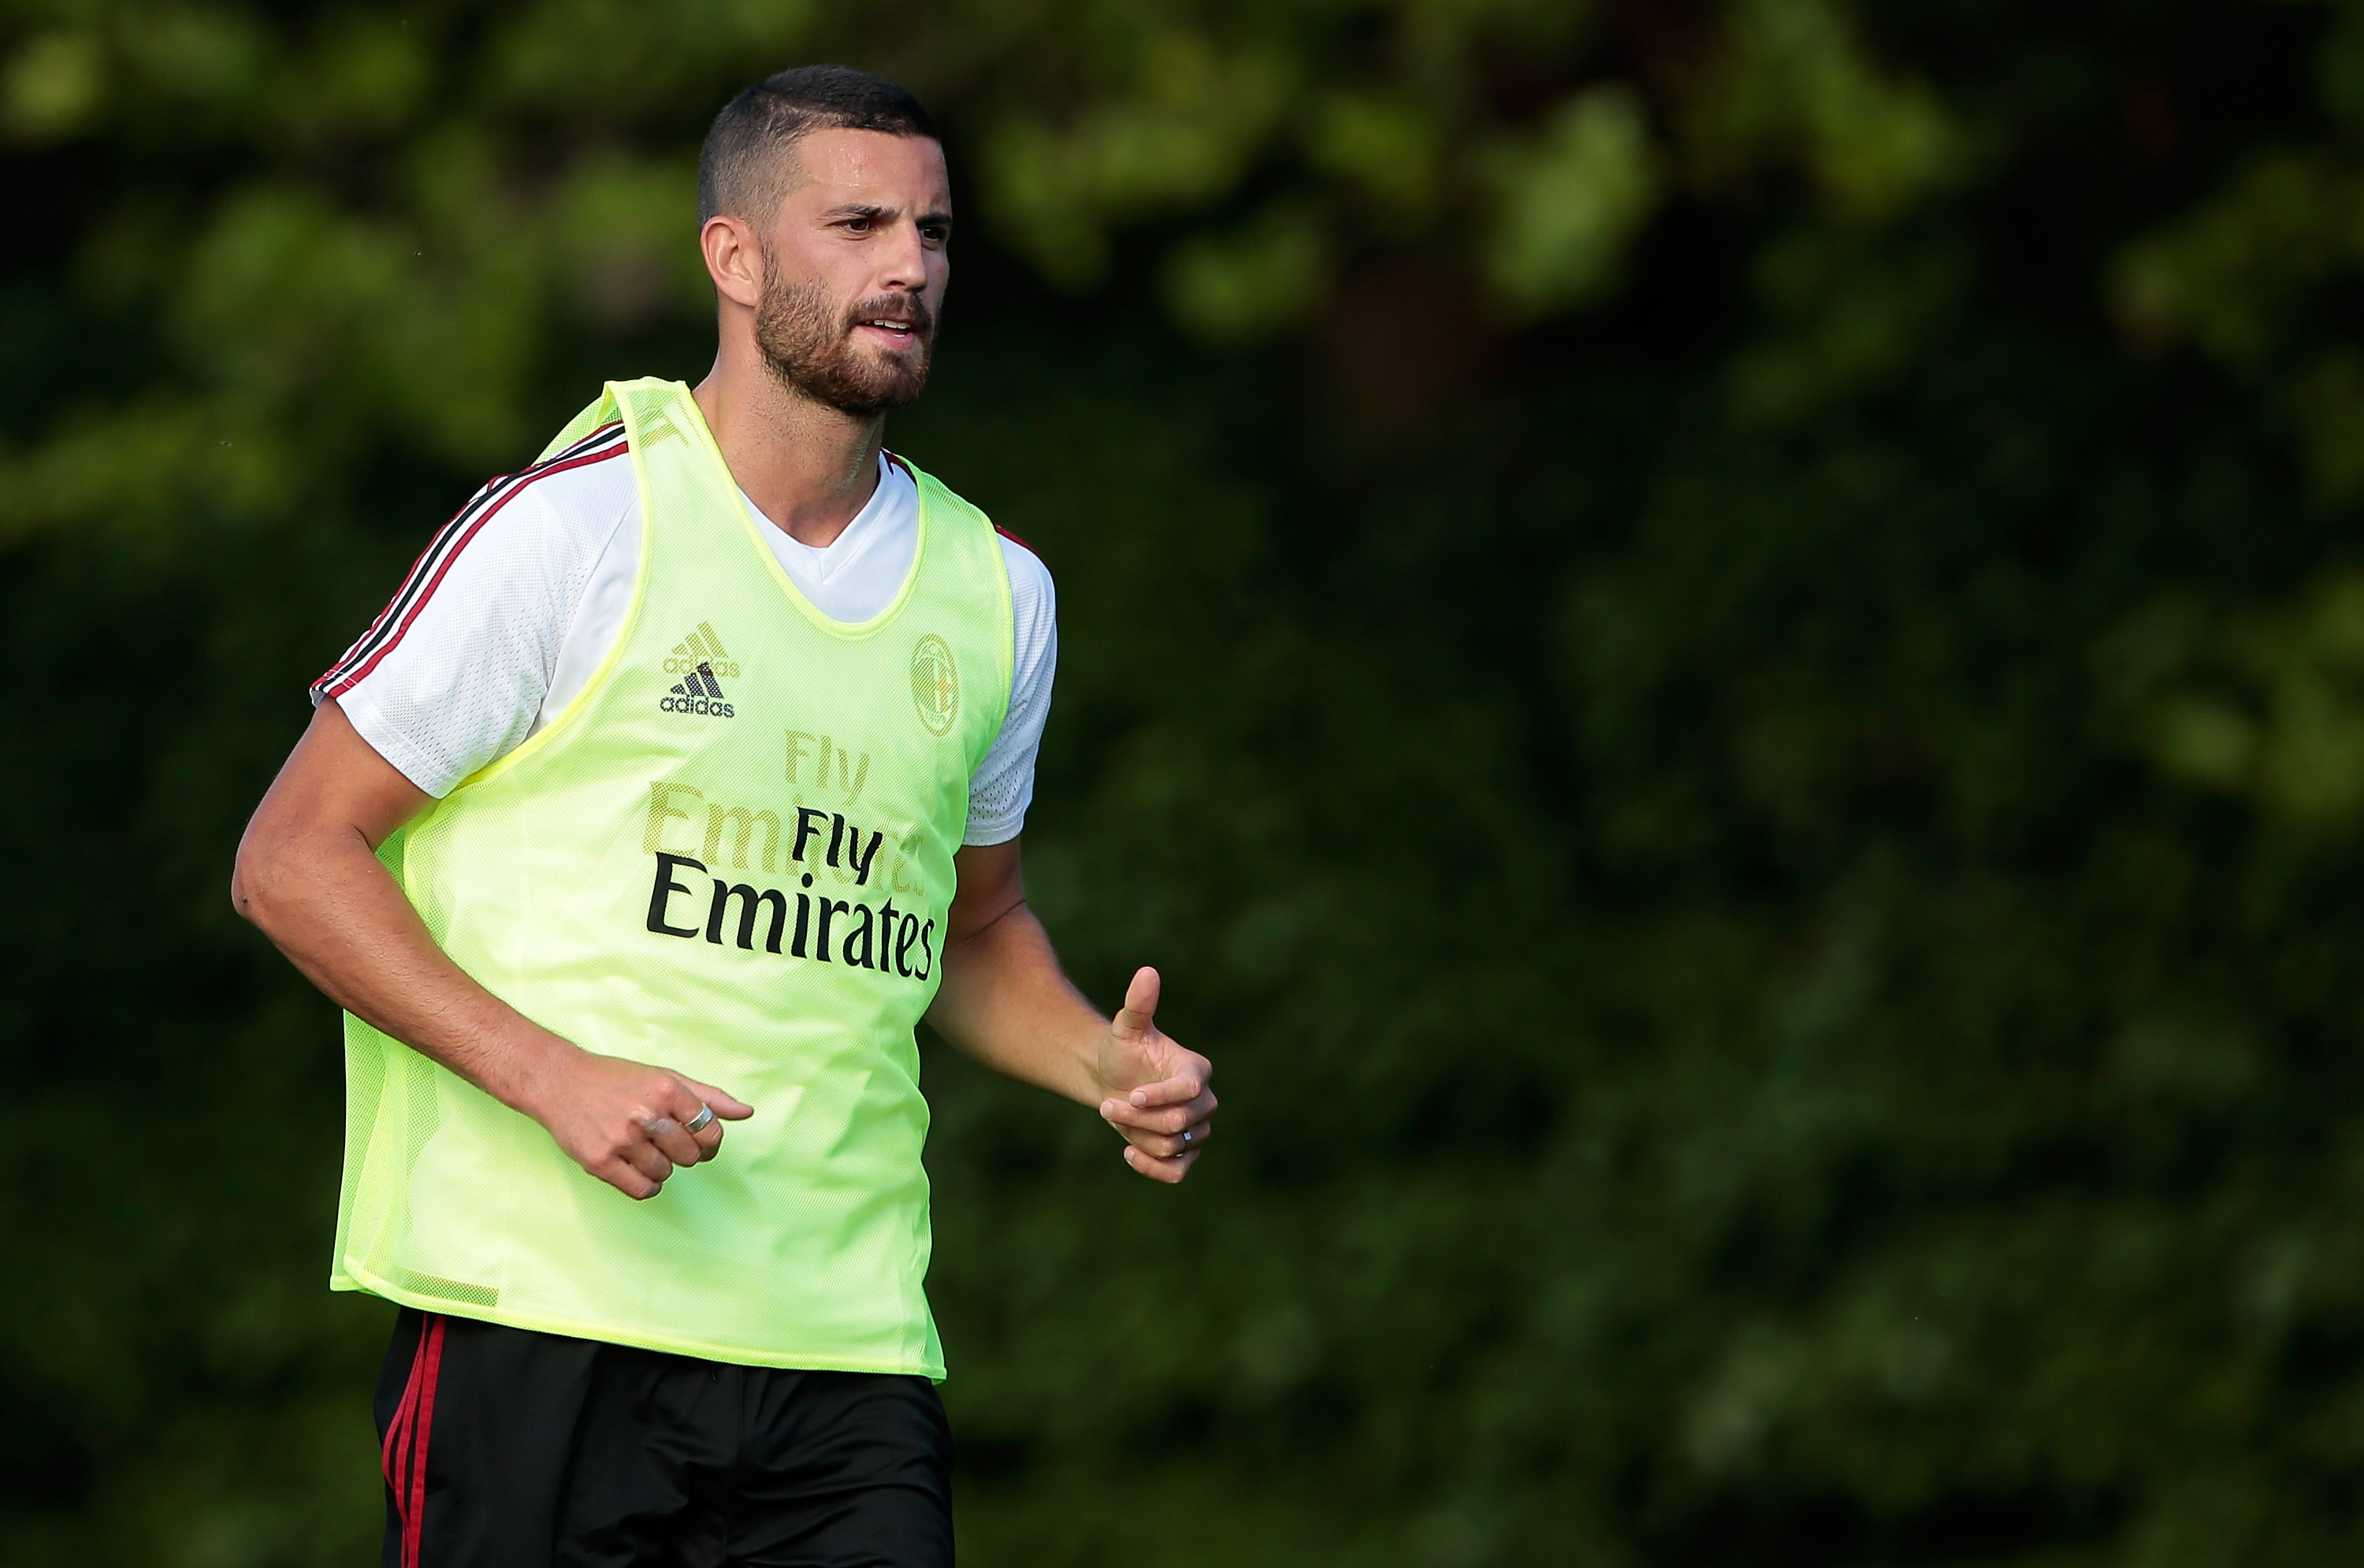 CAIRATE, ITALY - JULY 05: Mateo Pablo Musacchio of AC Milan looks on during the AC Milan training session at the club's training ground Milanello on July 5, 2017 in Cairate, Italy. (Photo by Emilio Andreoli/Getty Images)